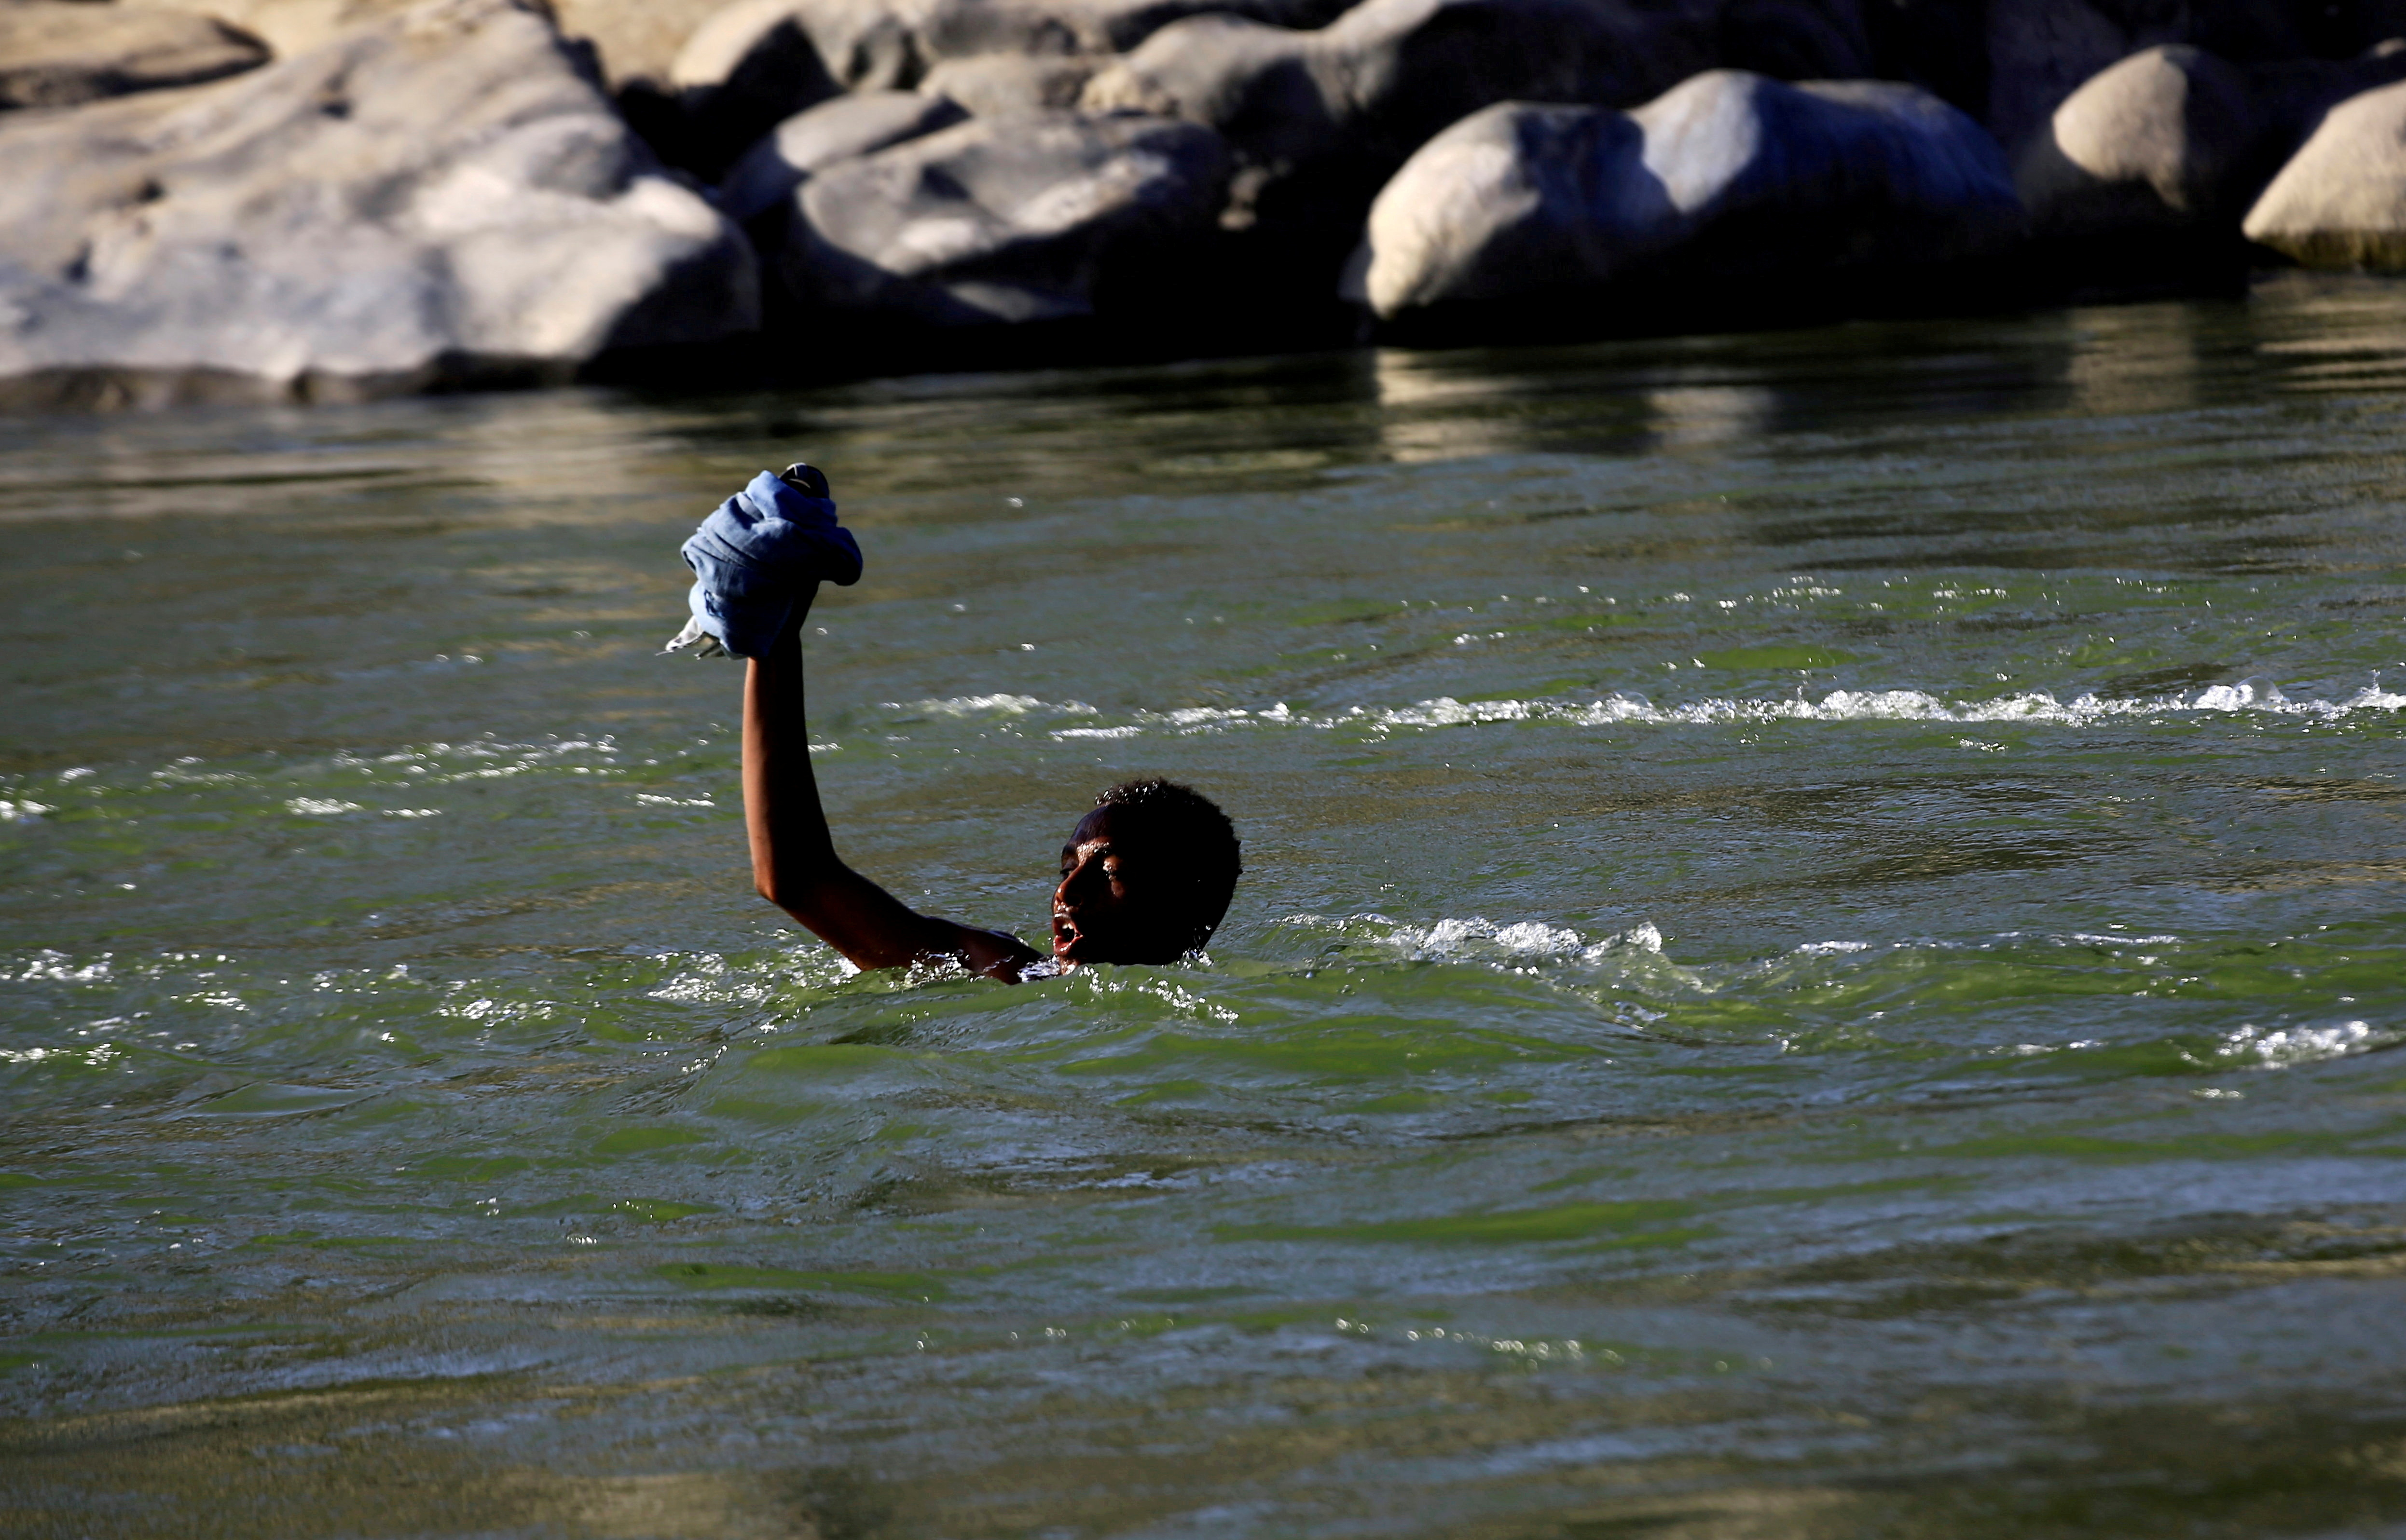 An Ethiopian fleeing fighting in Tigray region lifts his clothes as he crosses the Setit river on the Sudan-Ethiopia border in Hamdayet village in eastern Kassala state, Sudan November 22, 2020. REUTERS/Mohamed Nureldin Abdallah//File Photo